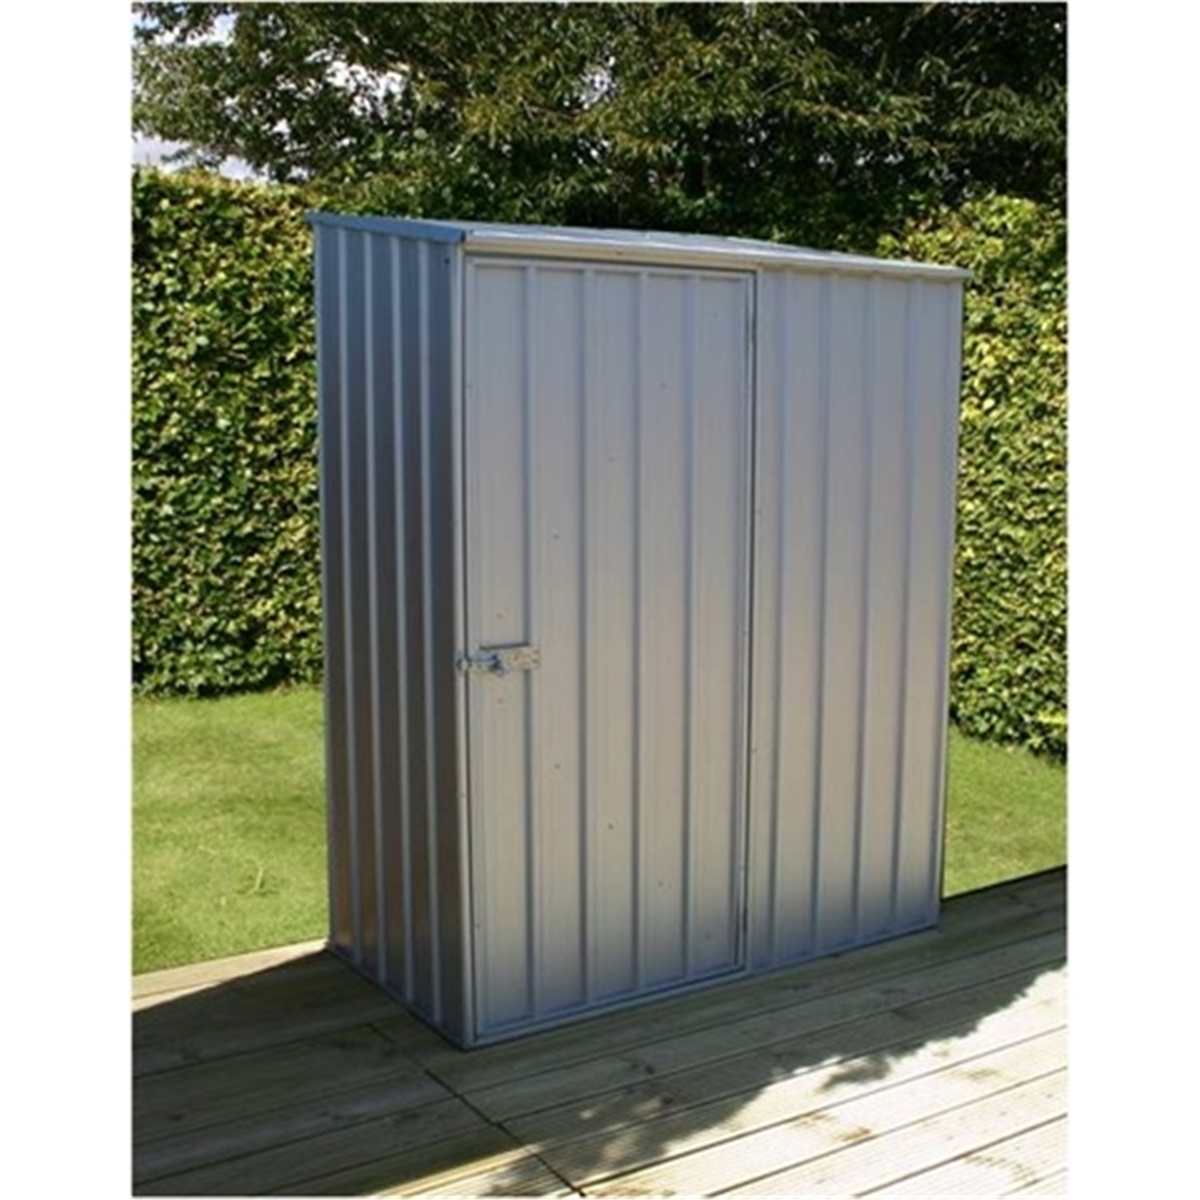 Wooden shed grillpavillon seattle 6 m 55mm 3x3 for Garden shed 3x3